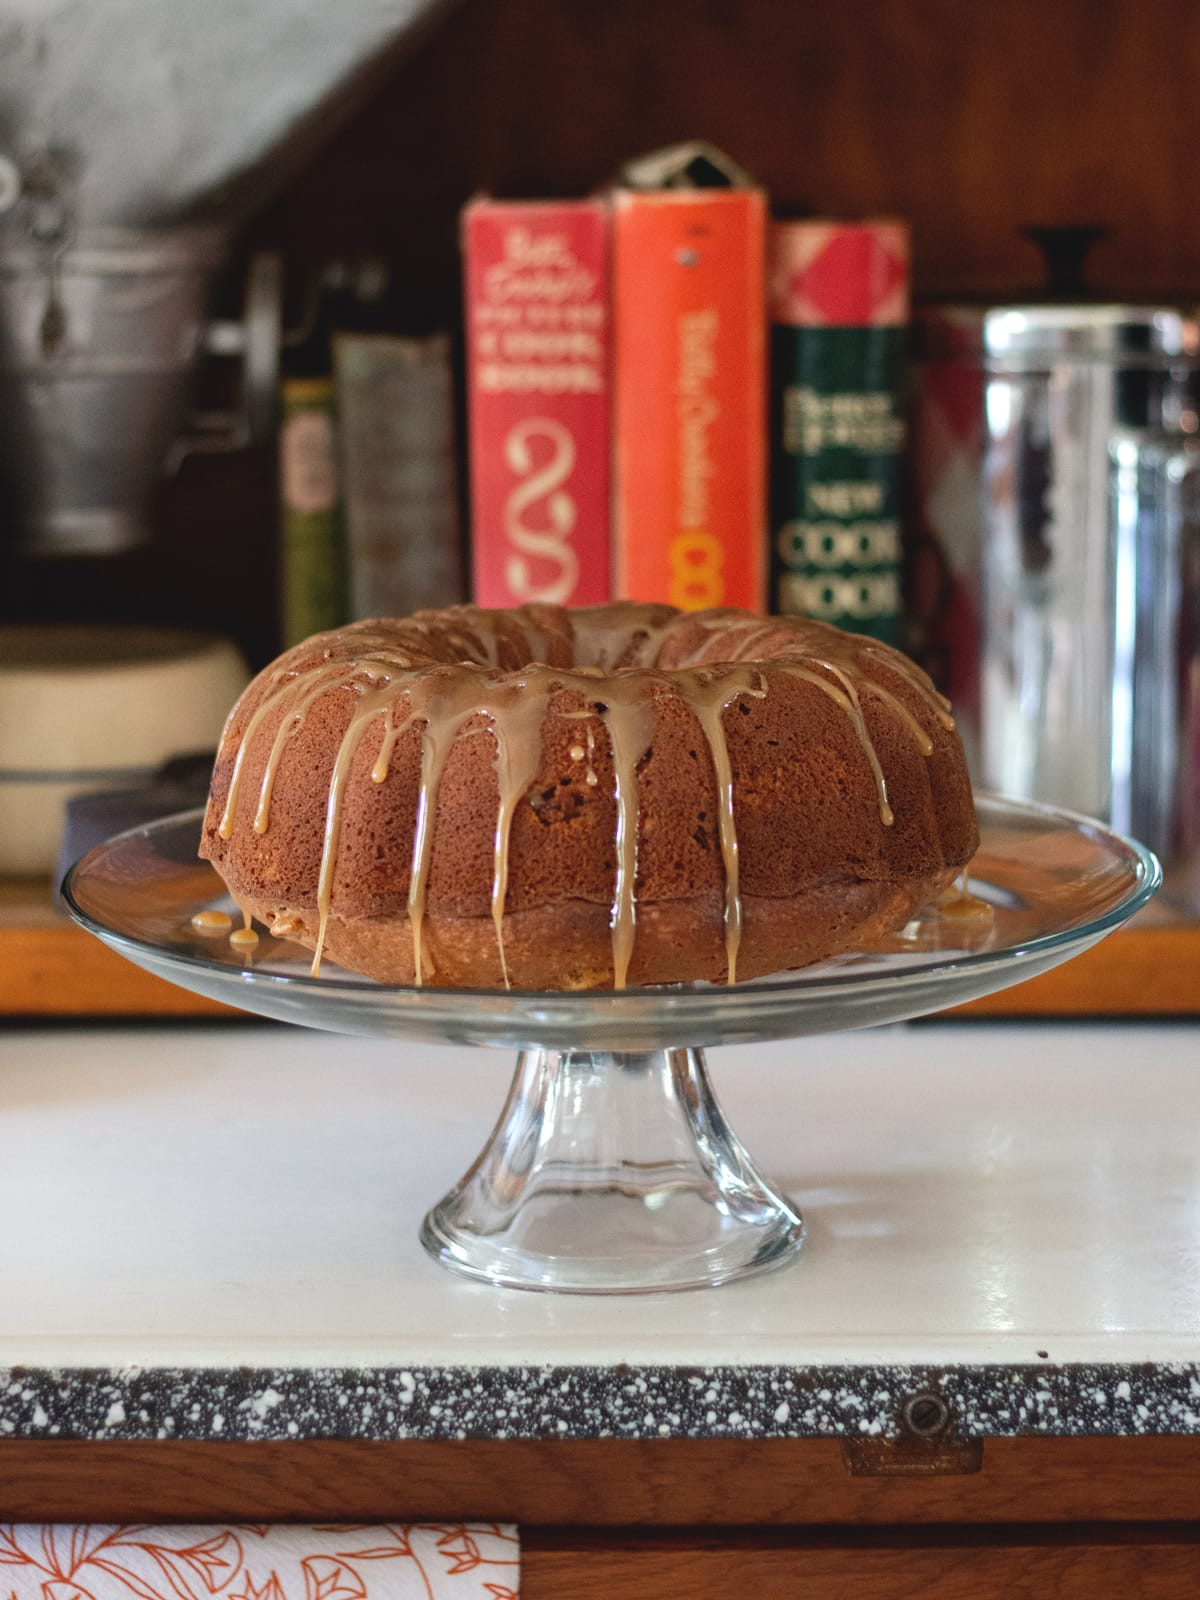 Apple Bundt Cake with Brown Sugar Glaze - Nice chunks of apple, crunchy pecans and a brown sugar glaze makes this cake the perfect autumn treat.